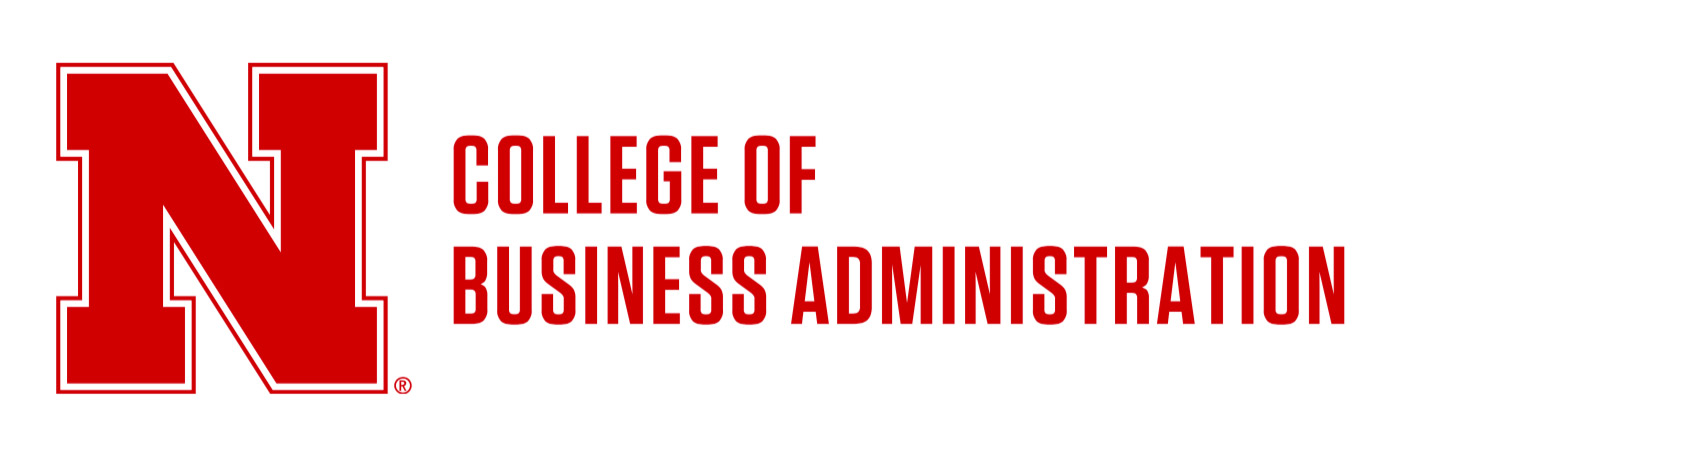 Horizontal lockup - College of Business Administration